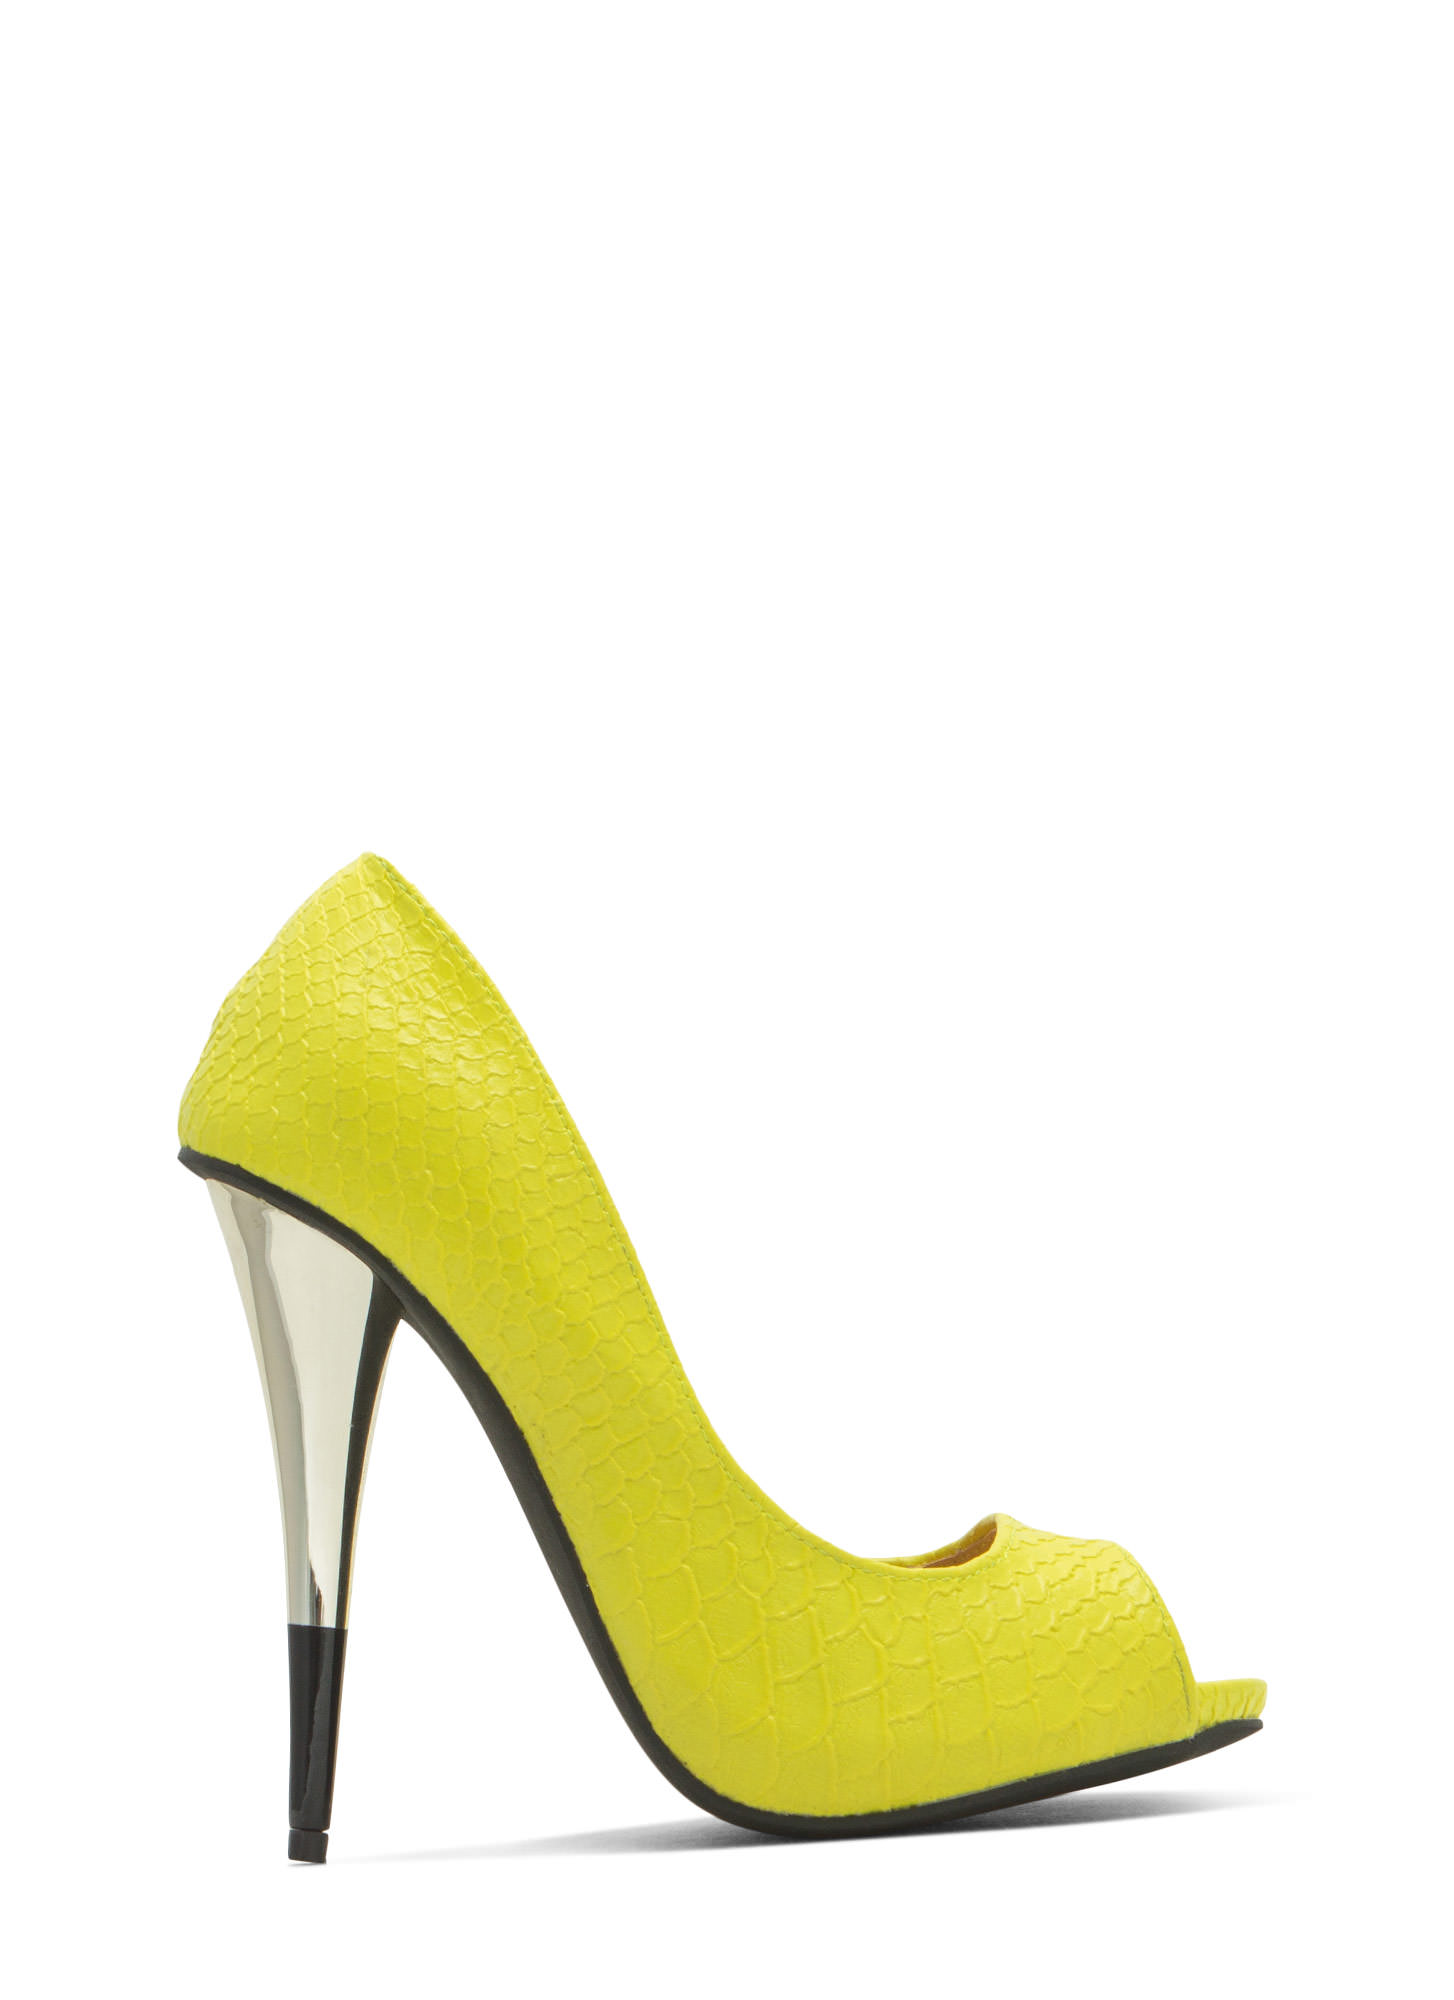 Tip You Off Reptile Scale Peep-Toe Heels YELLOW